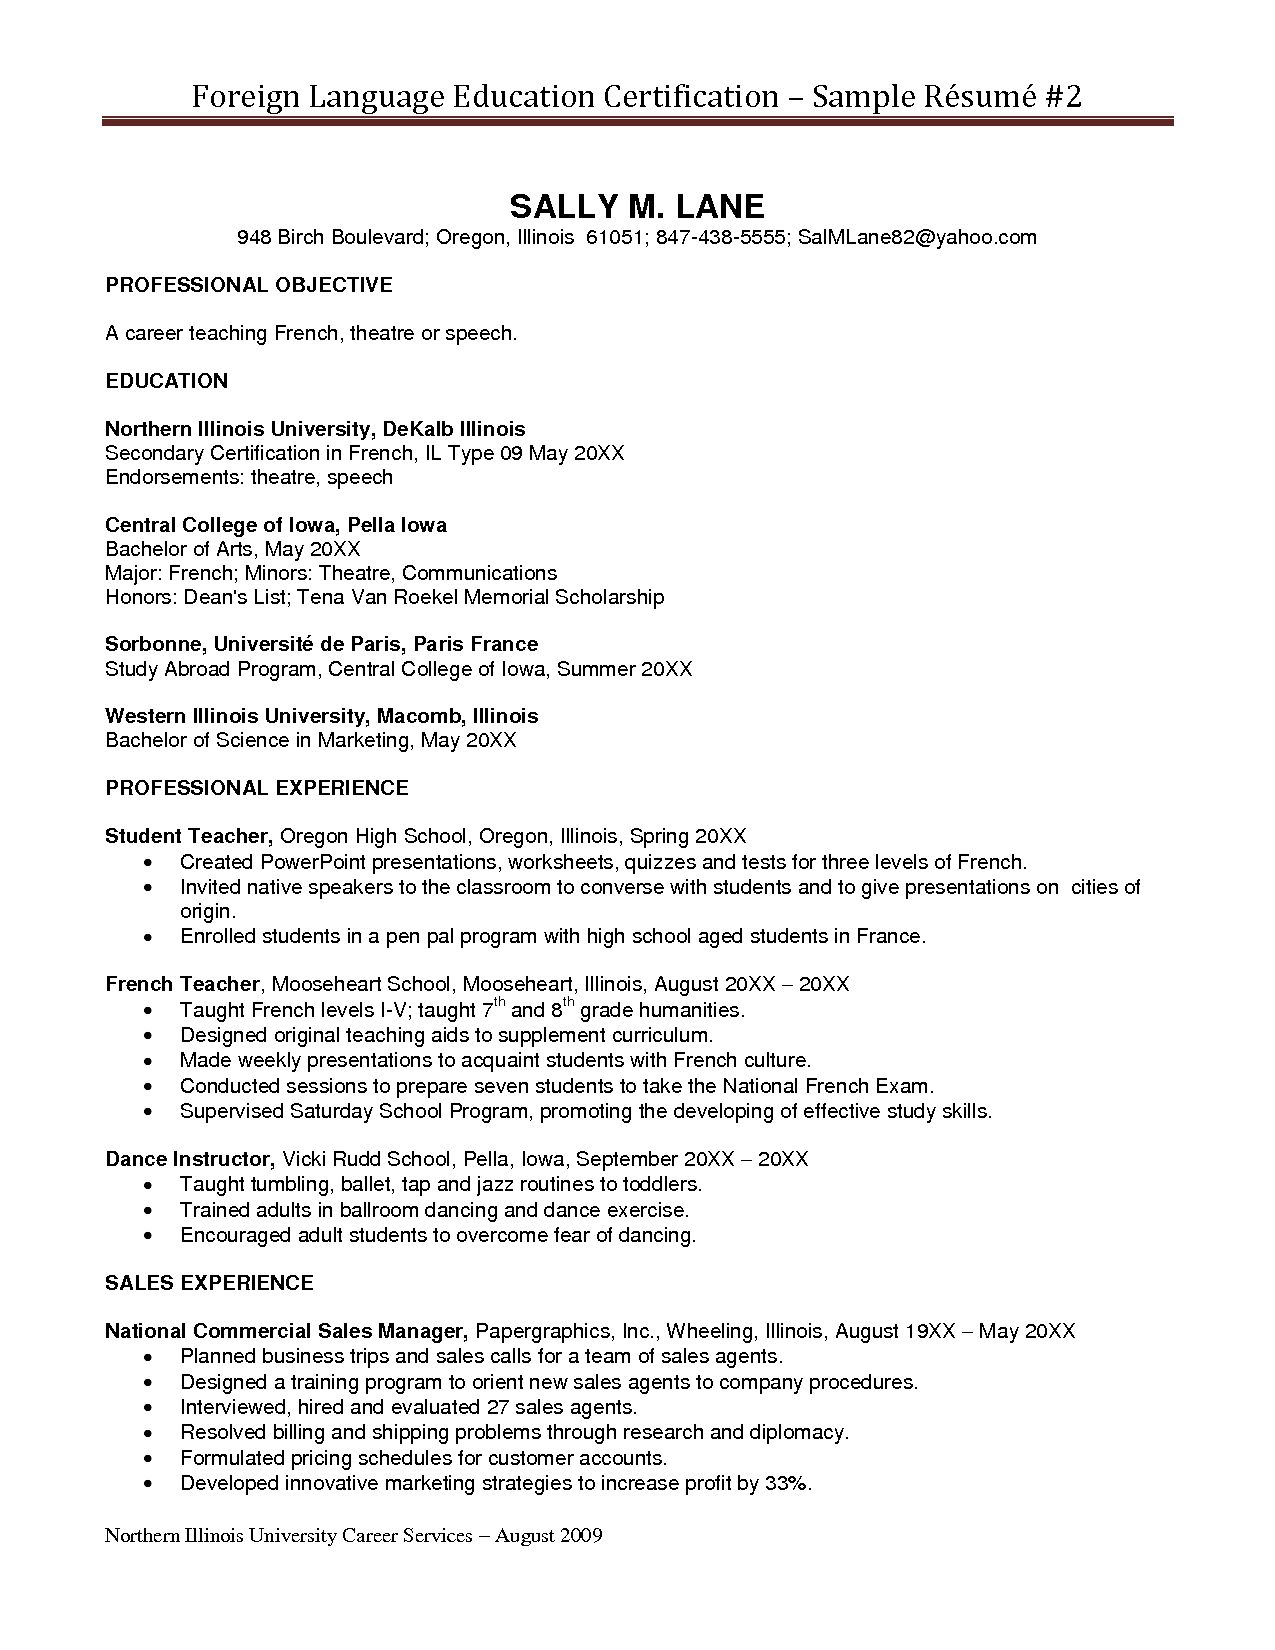 Certifications On A Resume Certification On Resume Example 0a11e7fb8  Resume Examples Templates